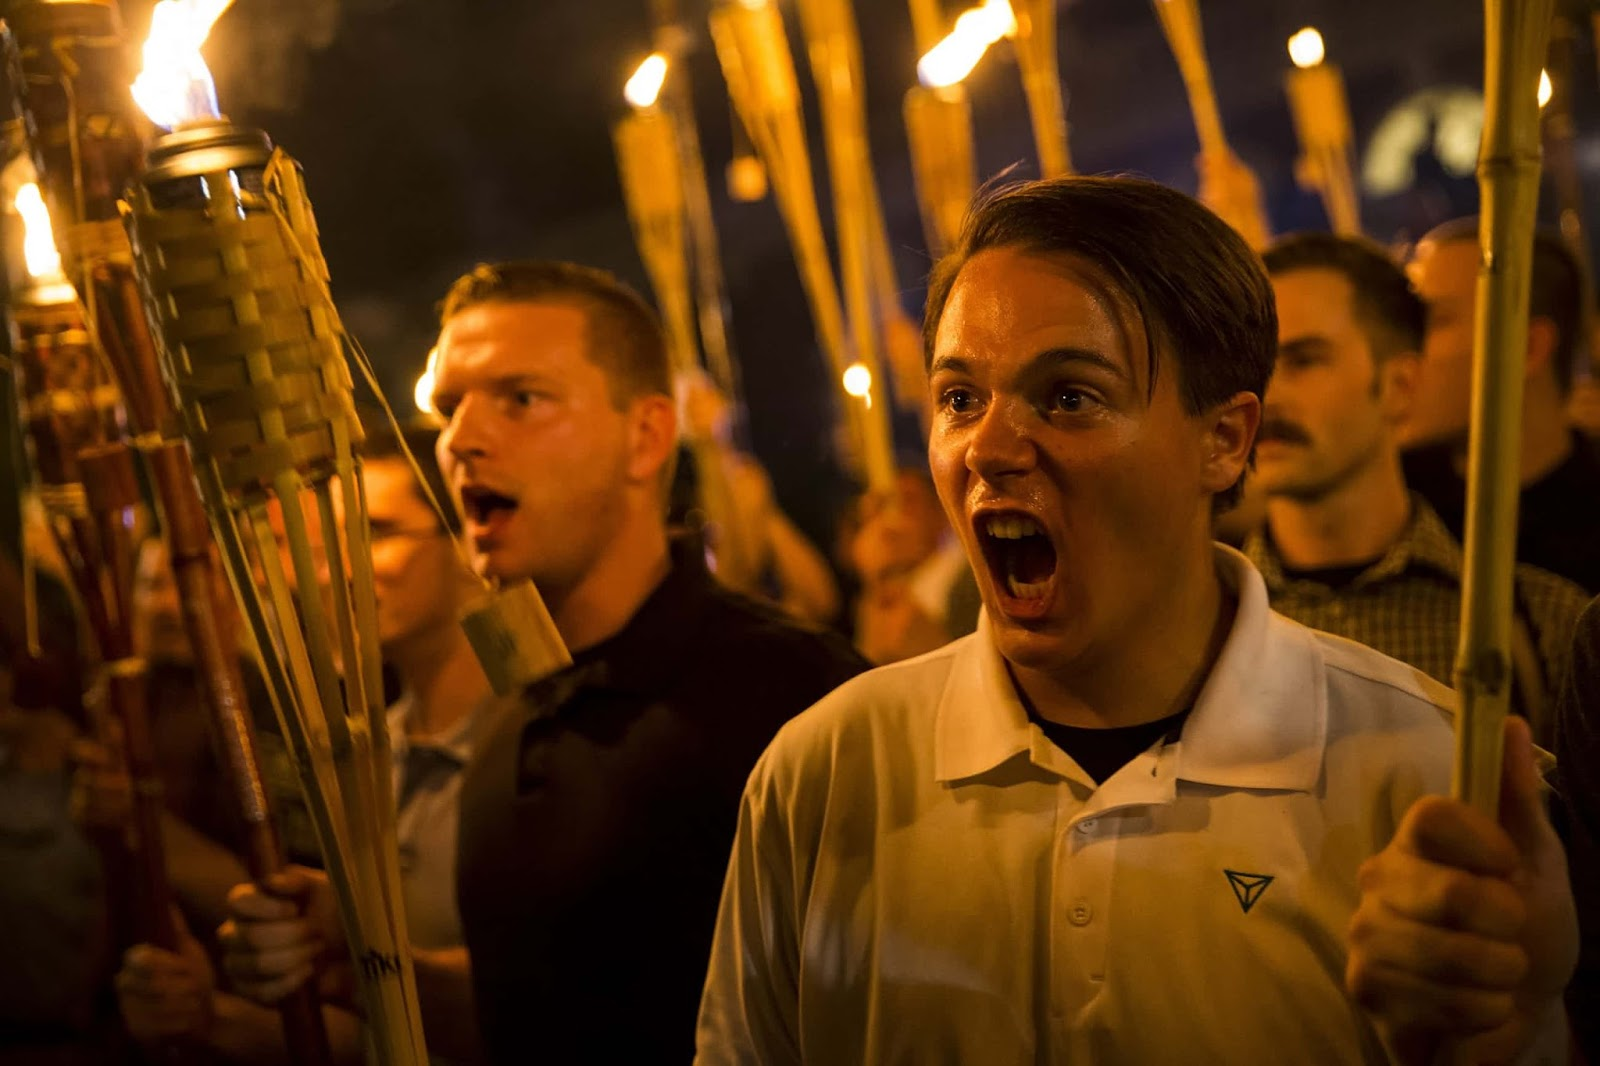 25 Of The Most Intriguing Pictures Of 2017 - White supremacists' torch march in Charlottesville